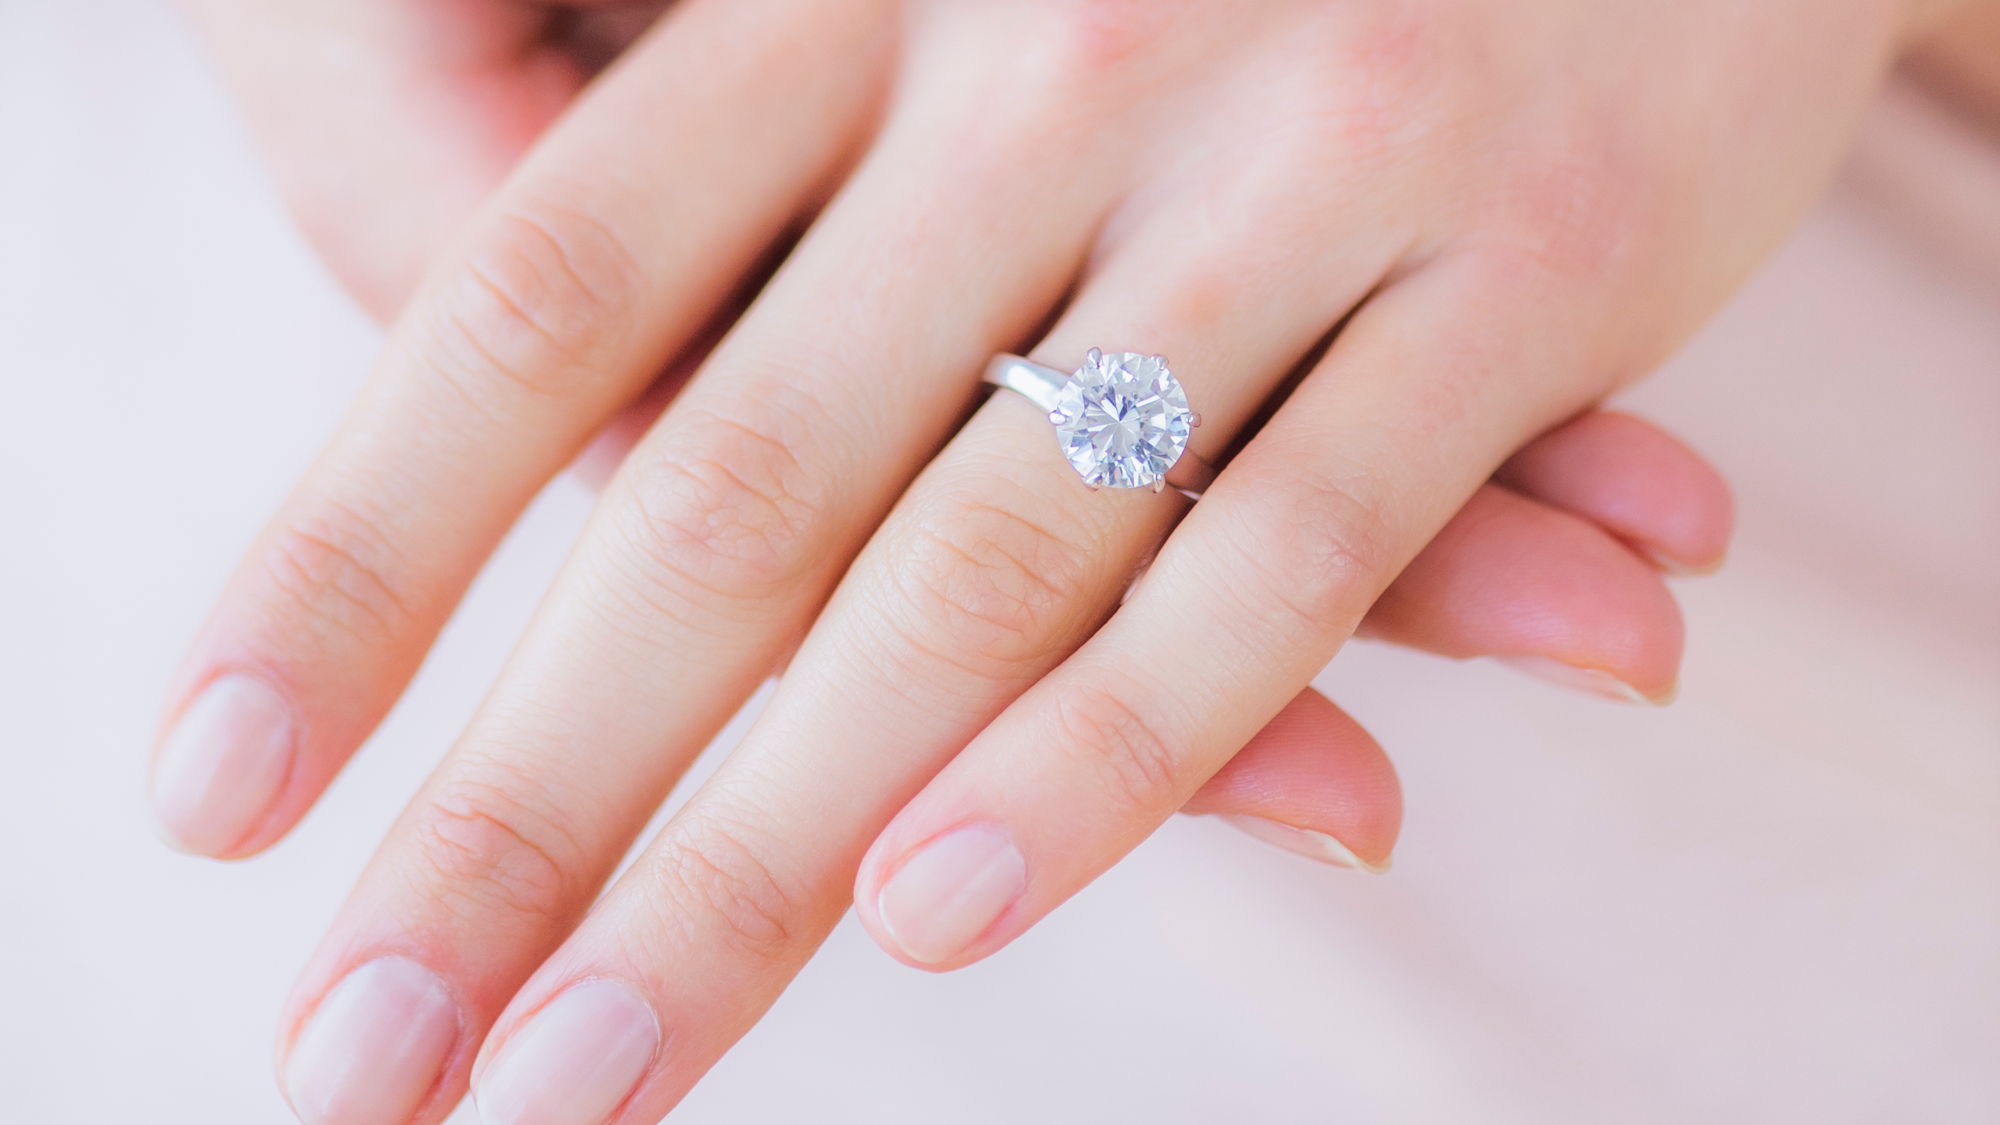 Wearing Fake Engagement Ring Job Interview Experience